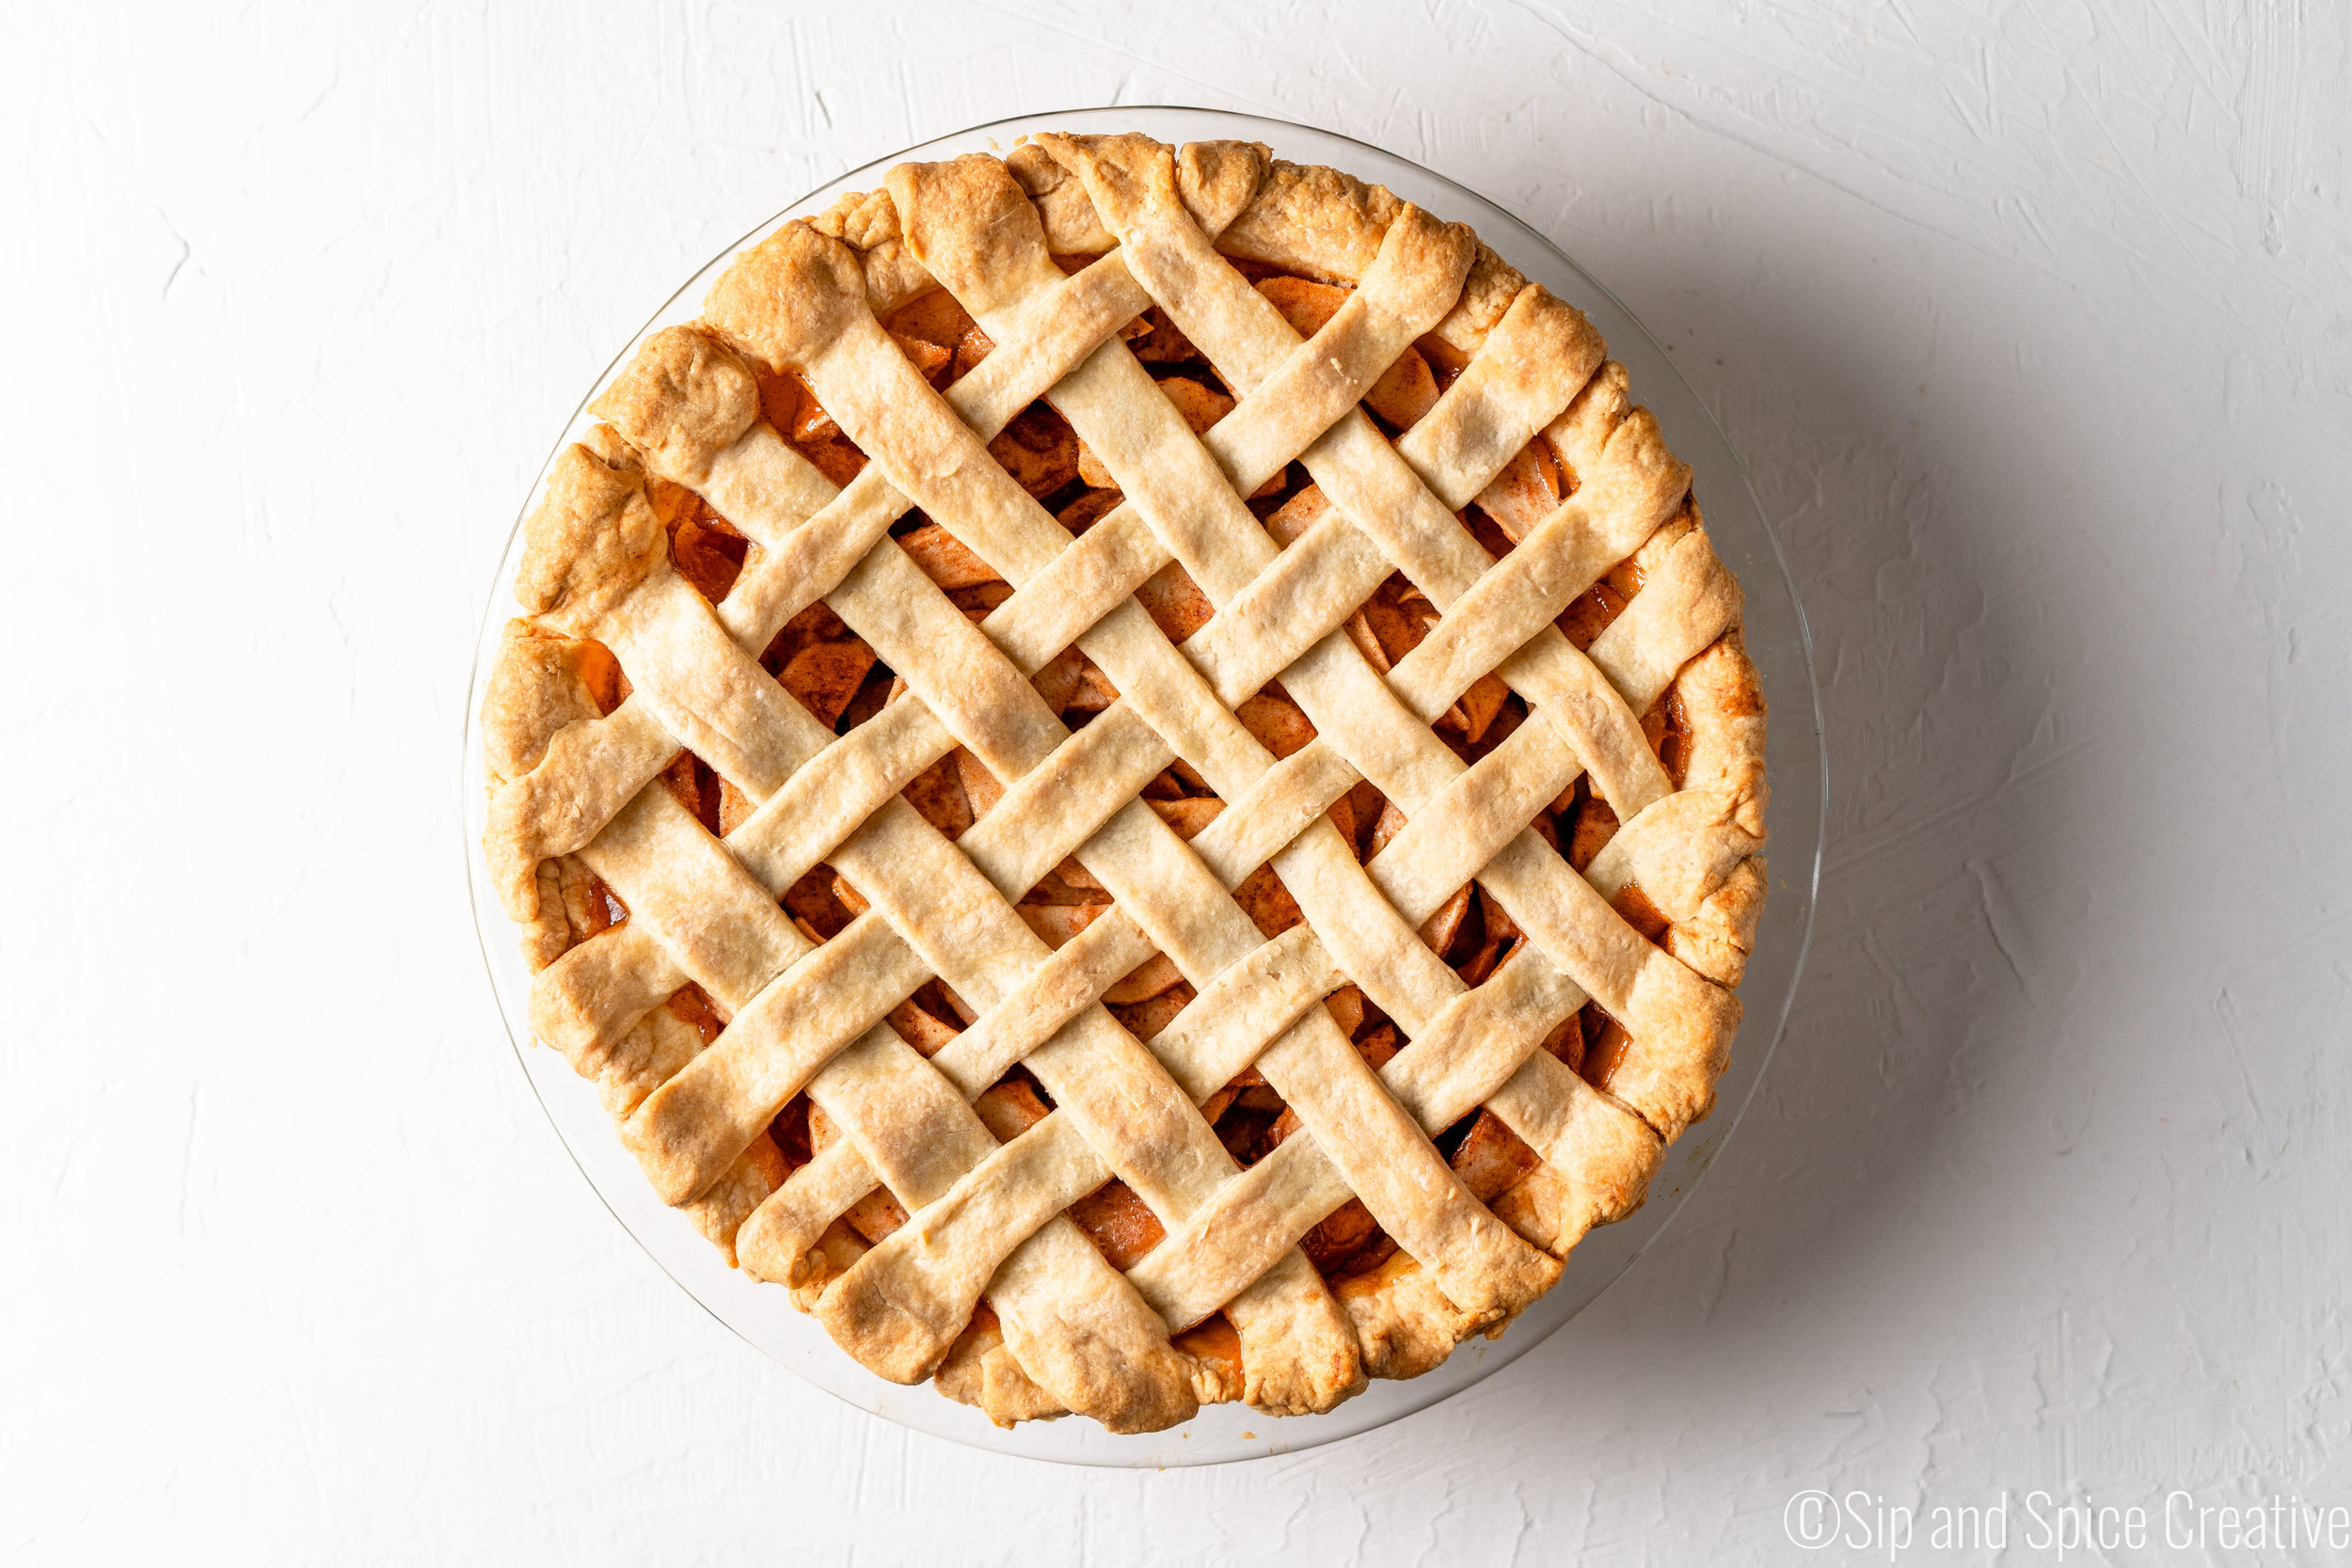 Classic Apple Pie  - Sip and Spice Creative 2.jpg